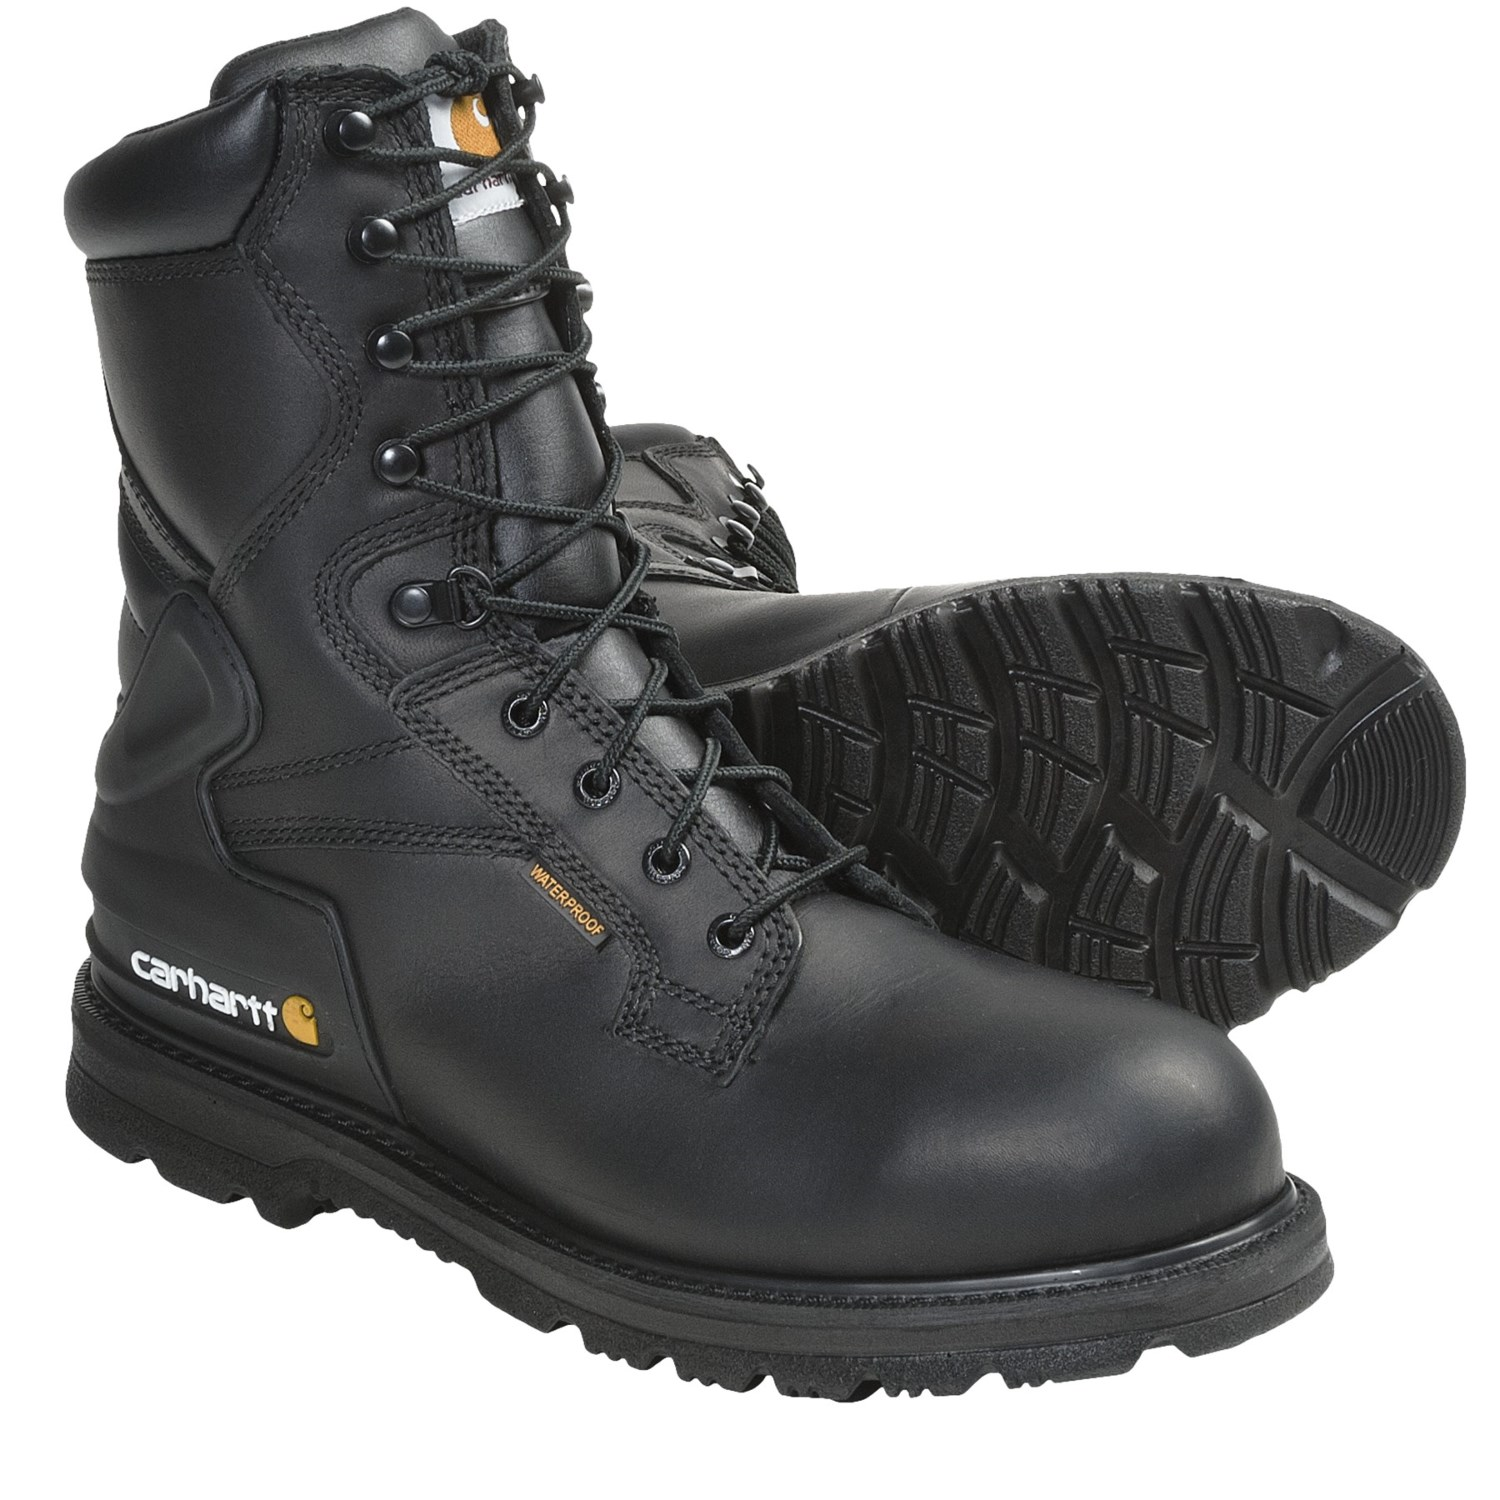 Deals on men's work boots